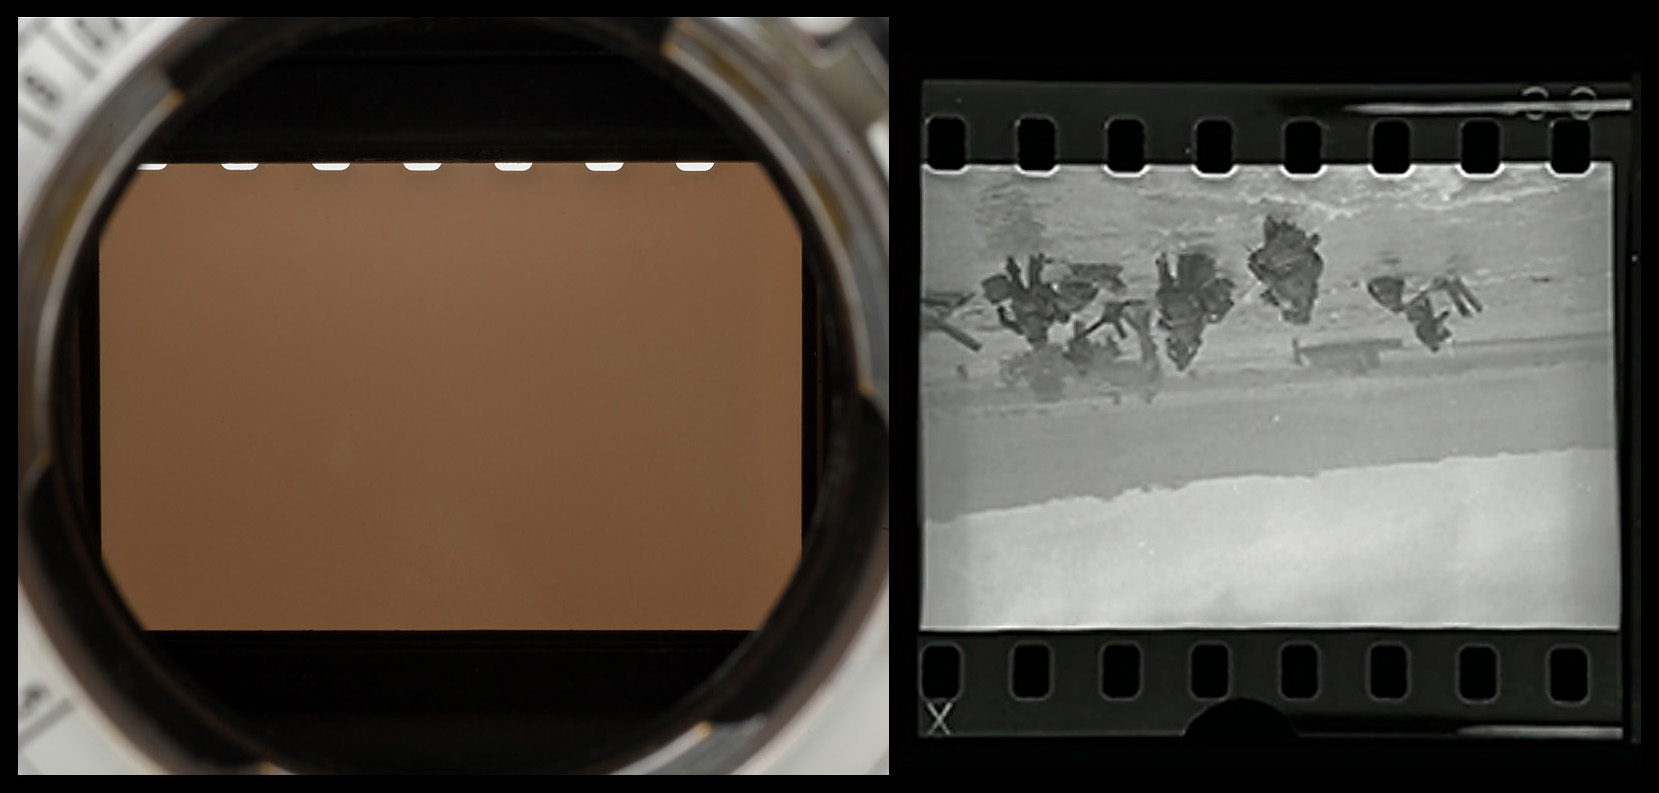 Close-ups showing sprocket-hole exposure getting larger near the right side of the images. Photos © 2015 by Rob McElroy.